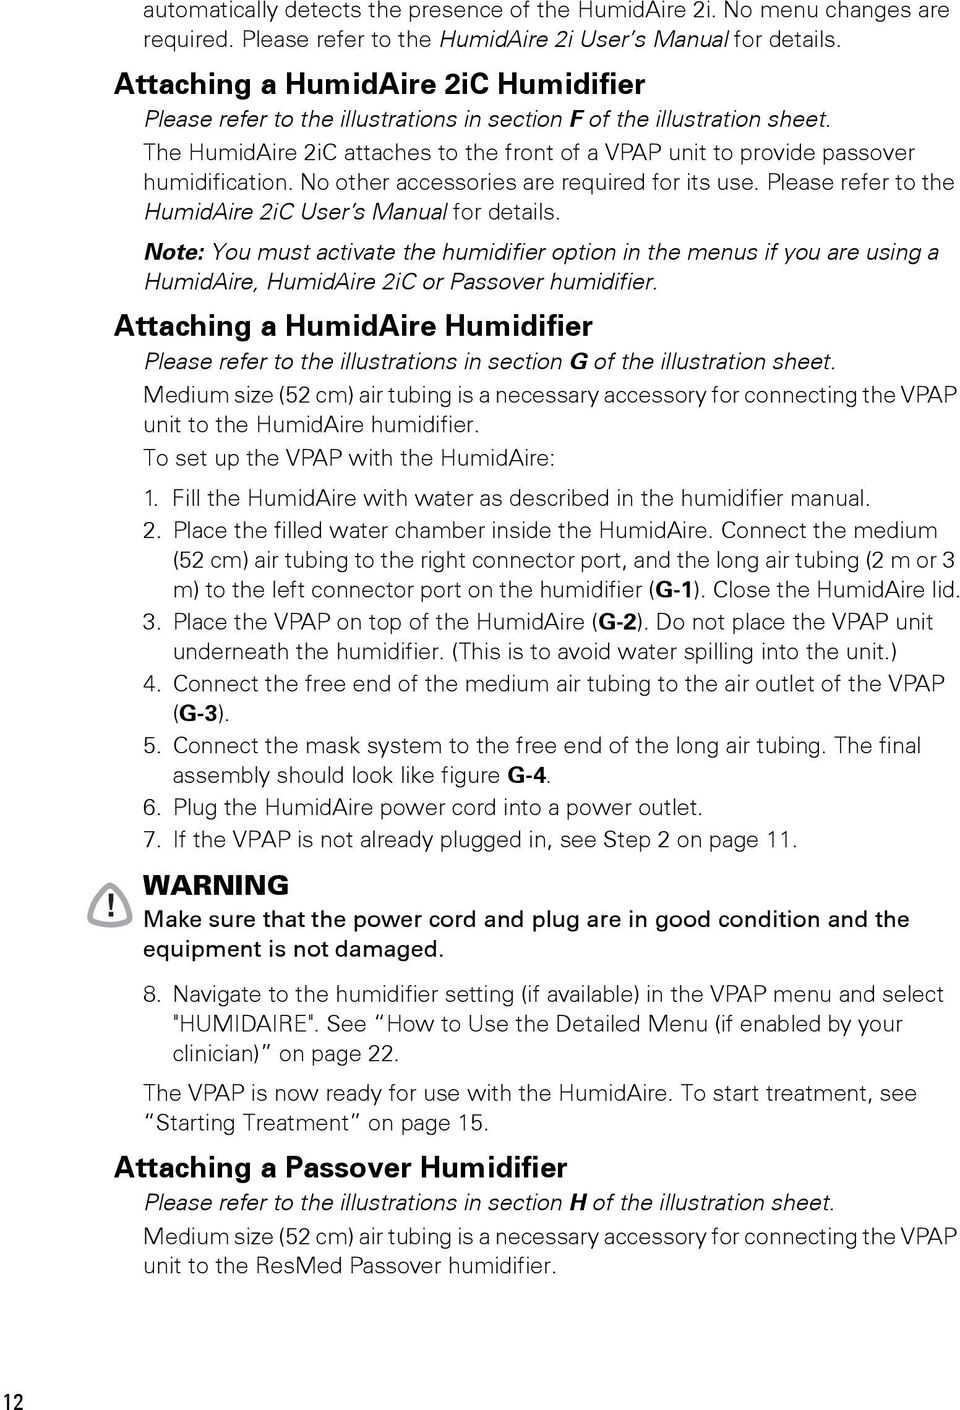 The HumidAire 2iC attaches to the front of a VPAP unit to provide passover humidification. No other accessories are required for its use. Please refer to the HumidAire 2iC User s Manual for details.